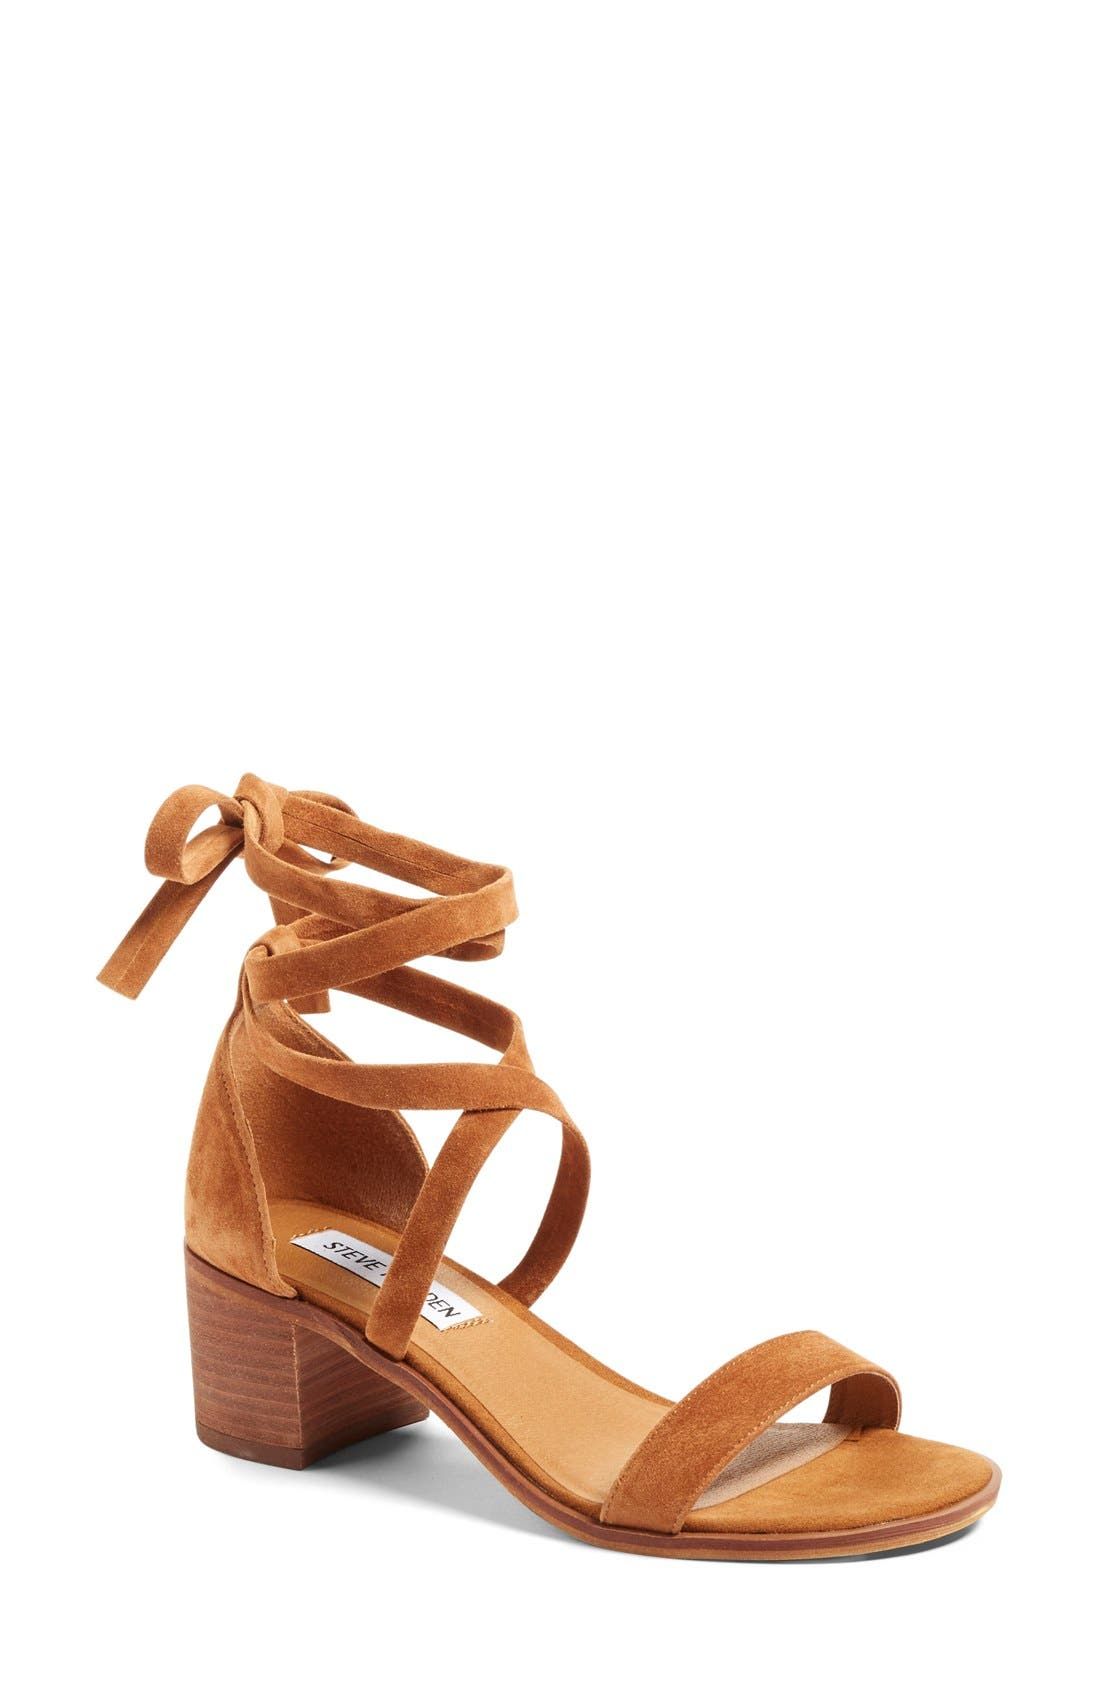 'Rizzaa' Ankle Strap Sandal,                         Main,                         color, 200